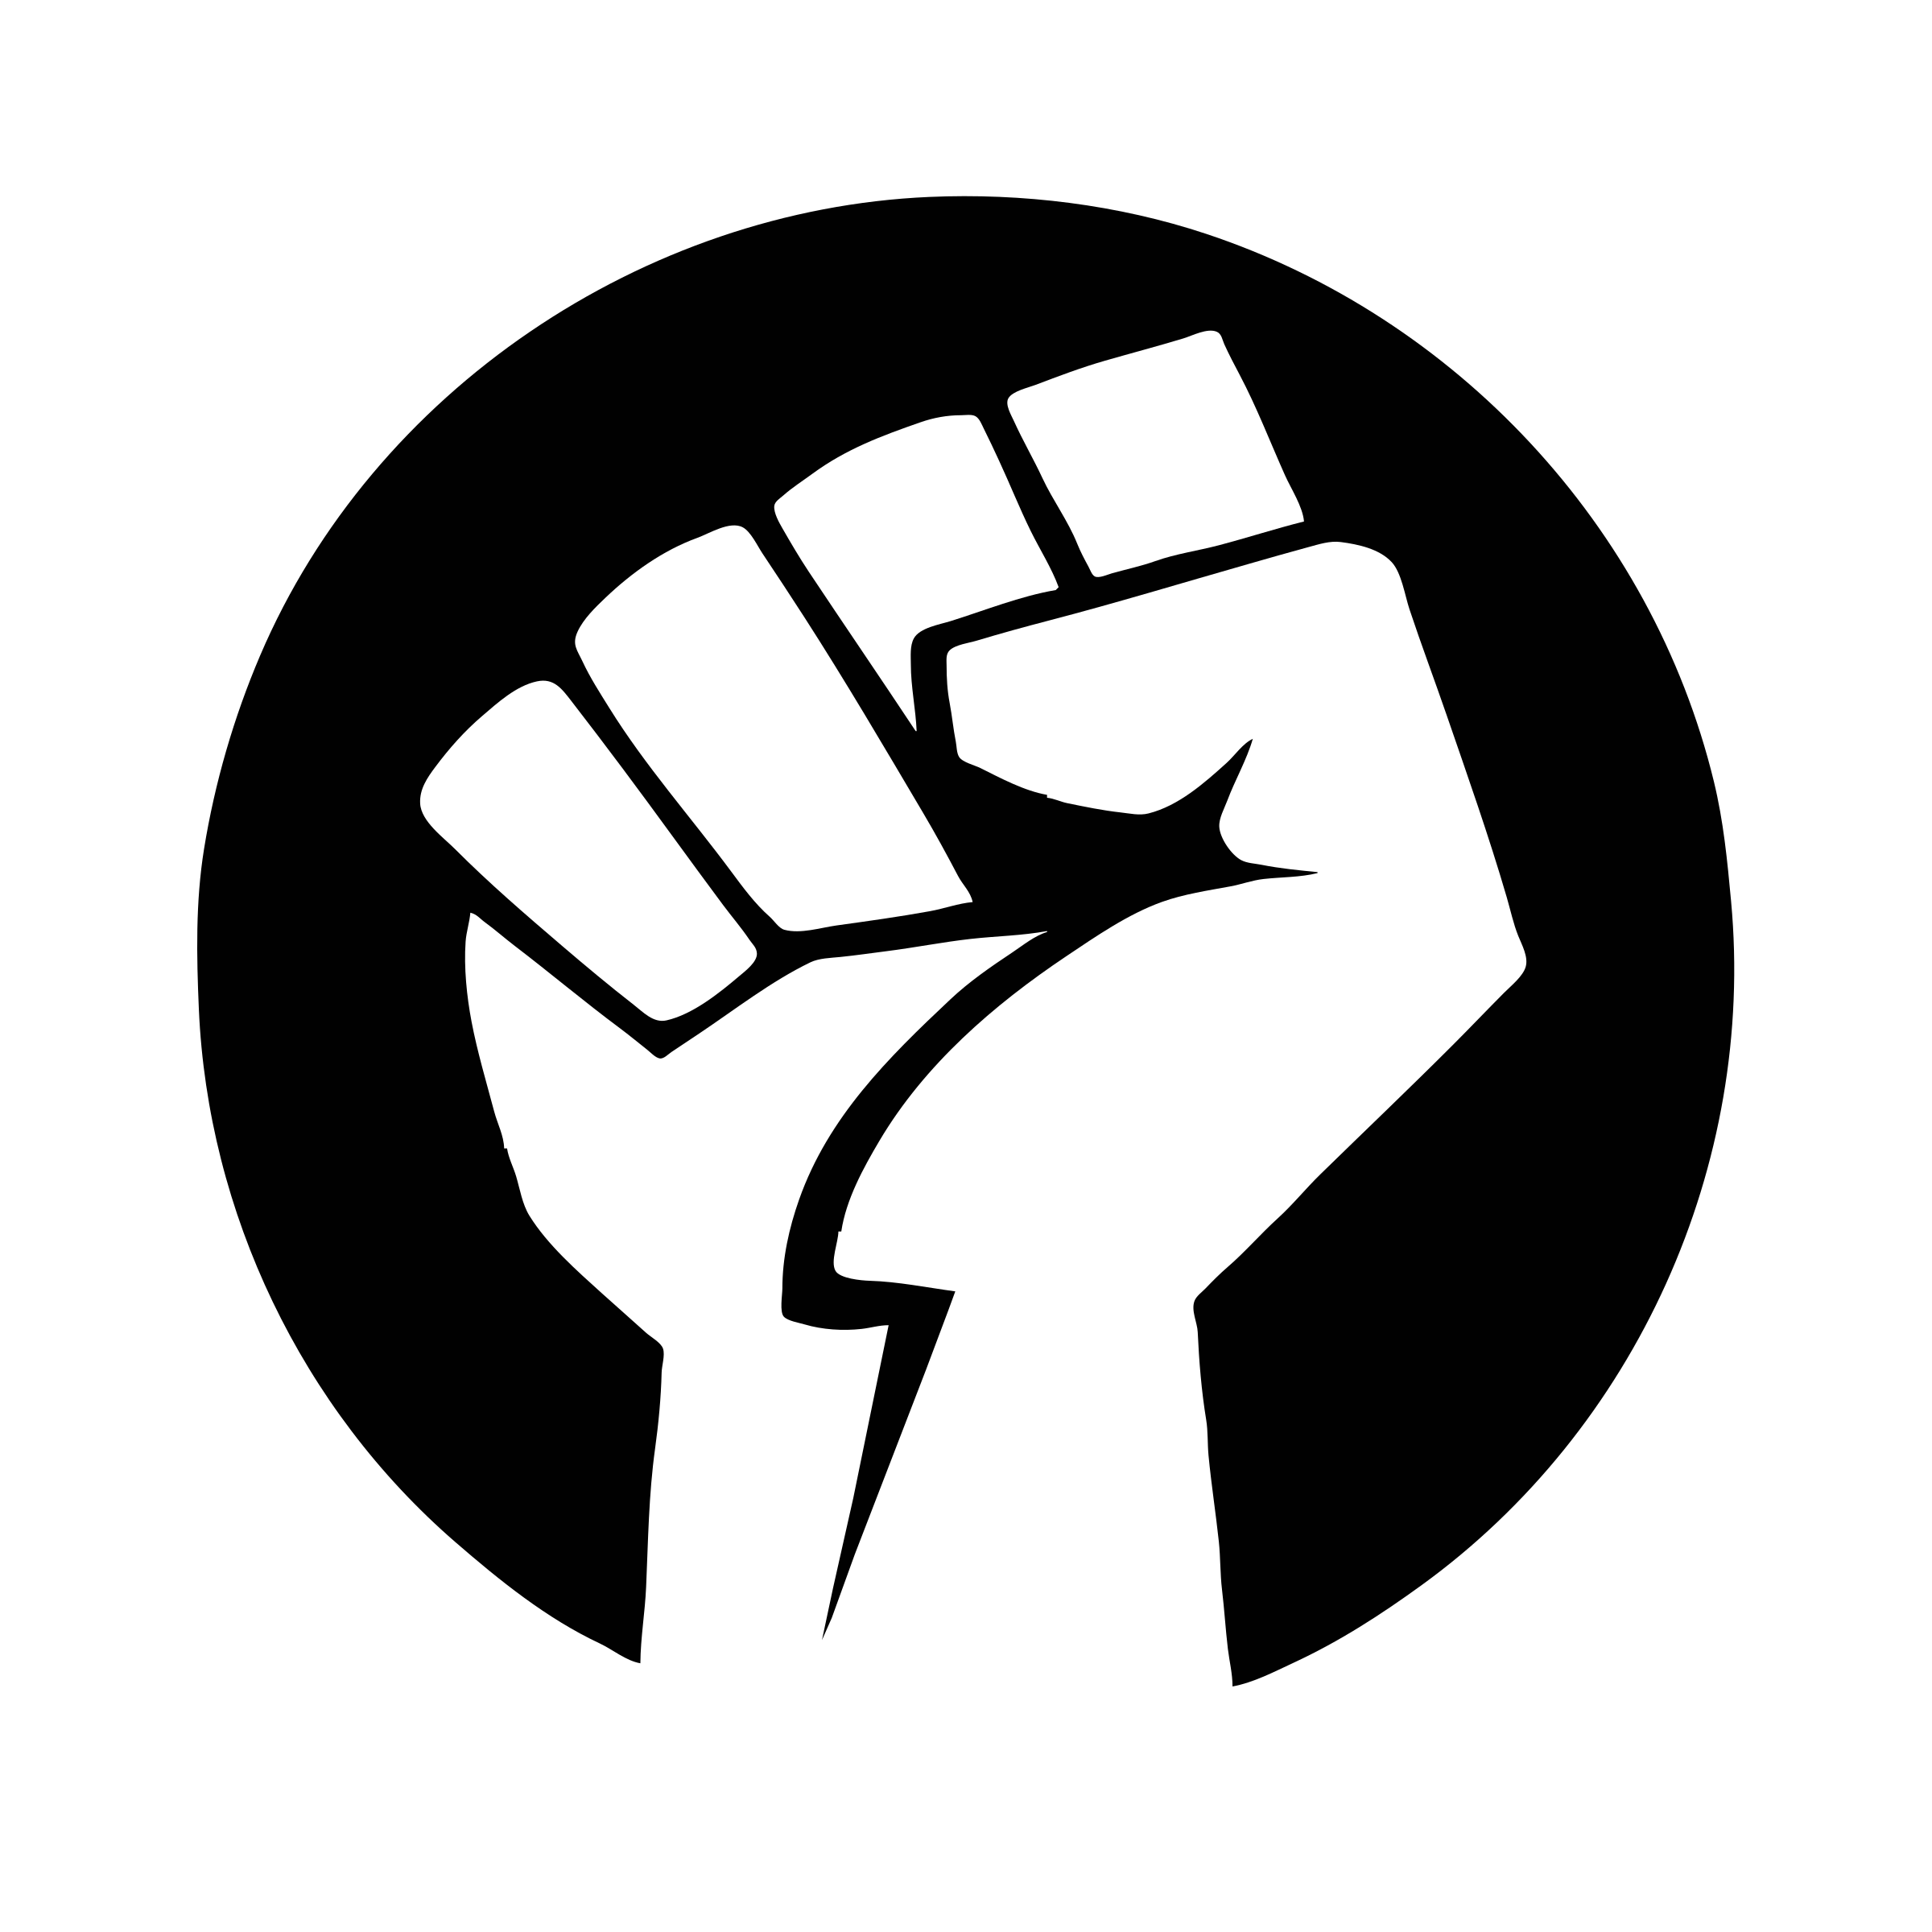 vector transparent download Power Fist BW by antti